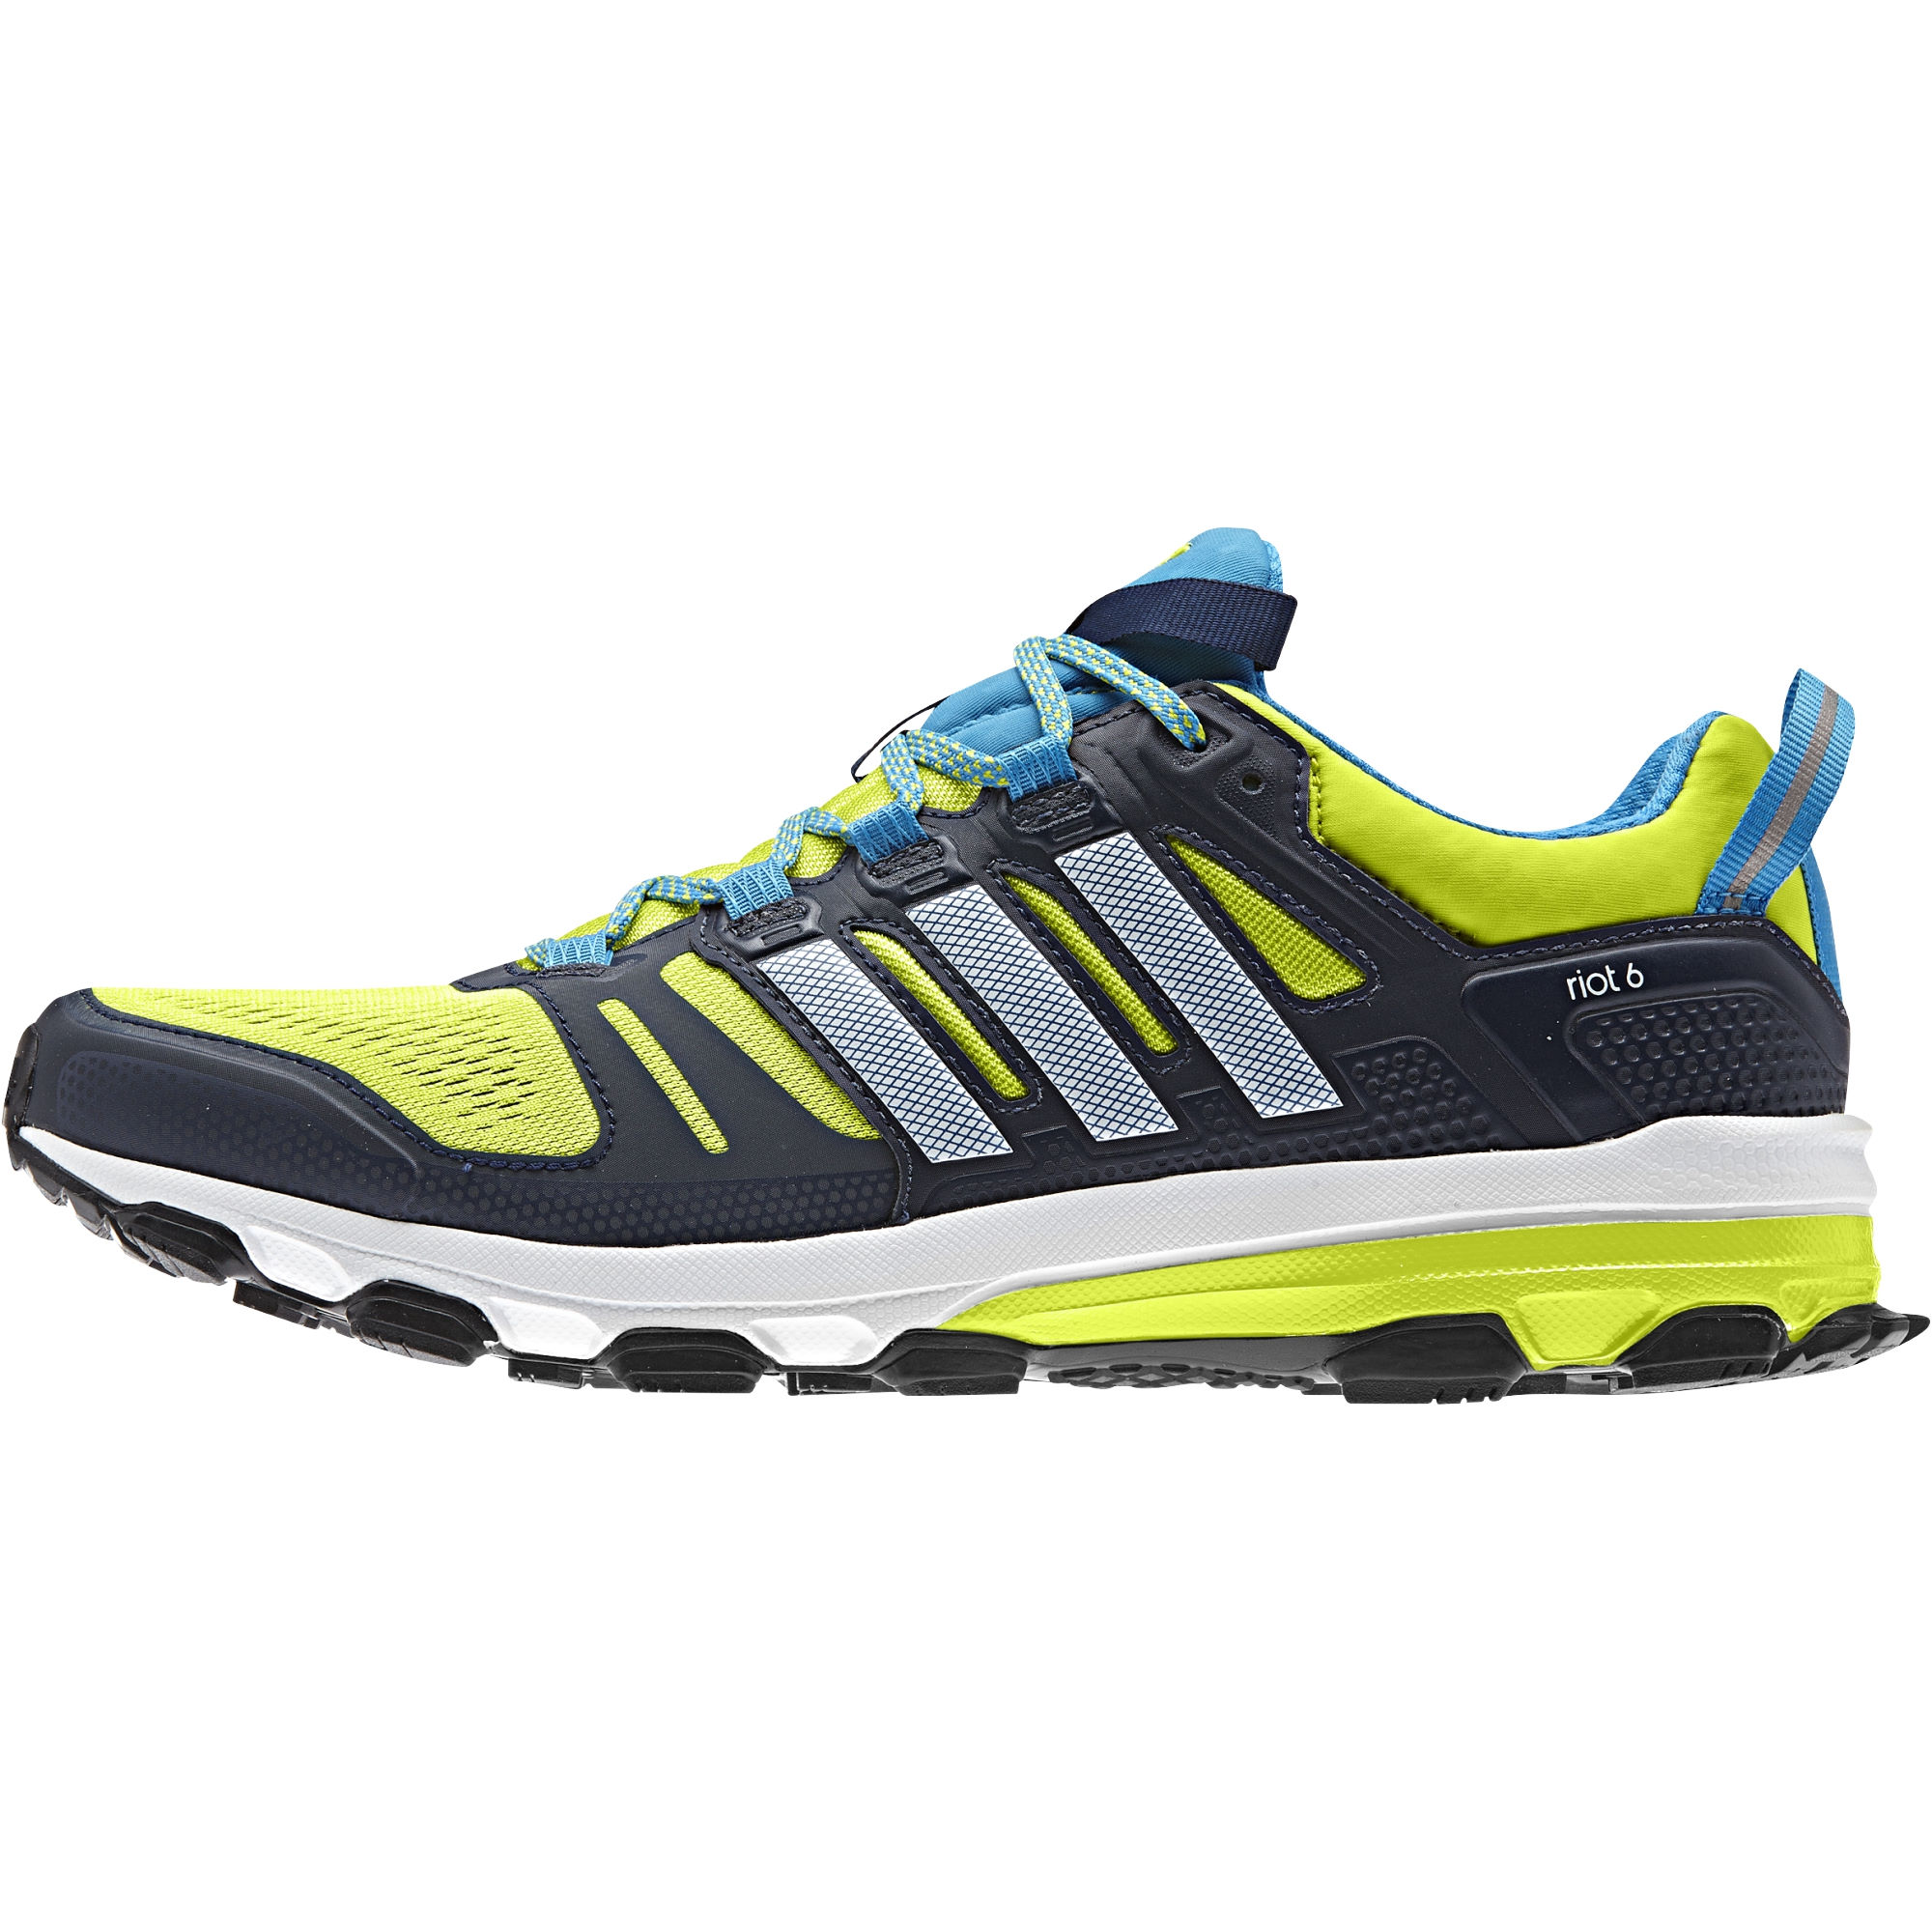 Wiggle | Adidas Supernova Riot 6 Shoes - SS15 | Offroad